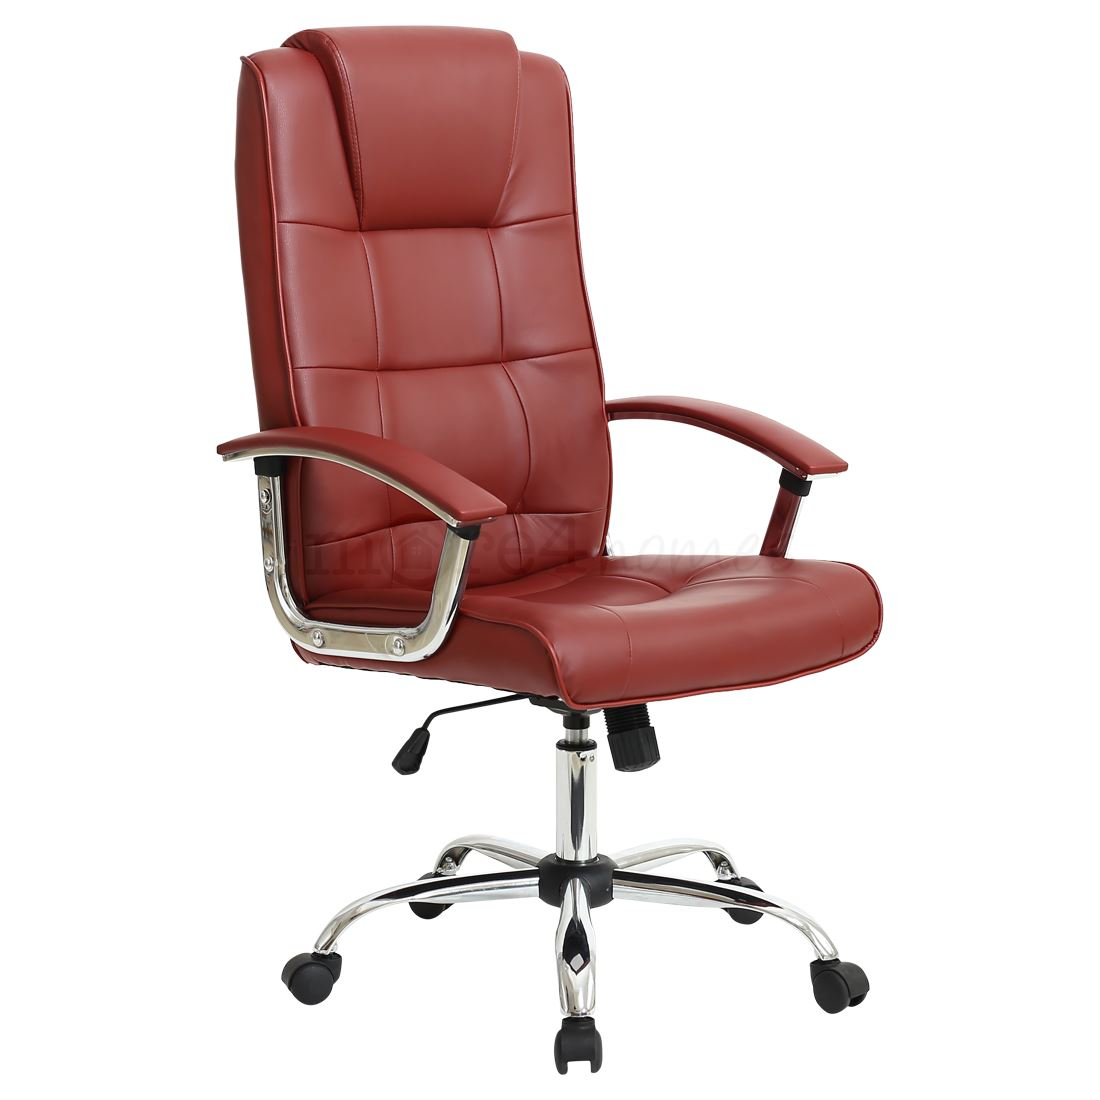 High Back Desk Chair Grande High Back Executive Leather Office Chair Computer